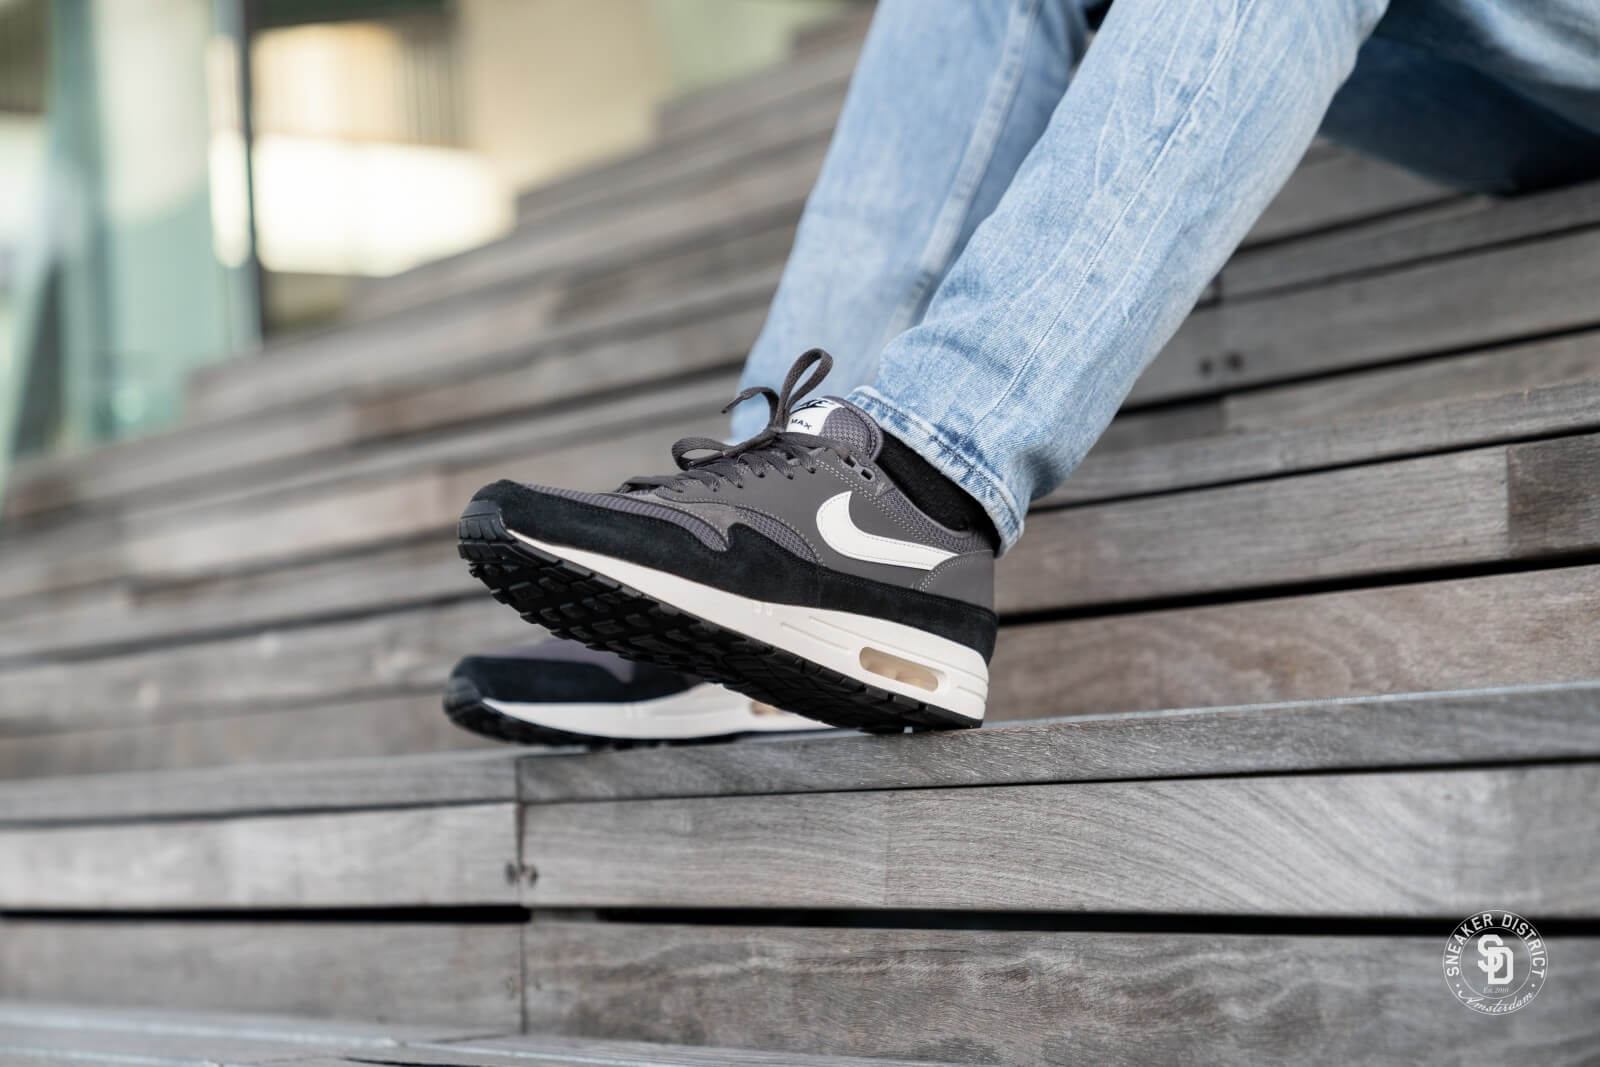 Nike Air Max 1 Thunder GreySail Black AH8145 012